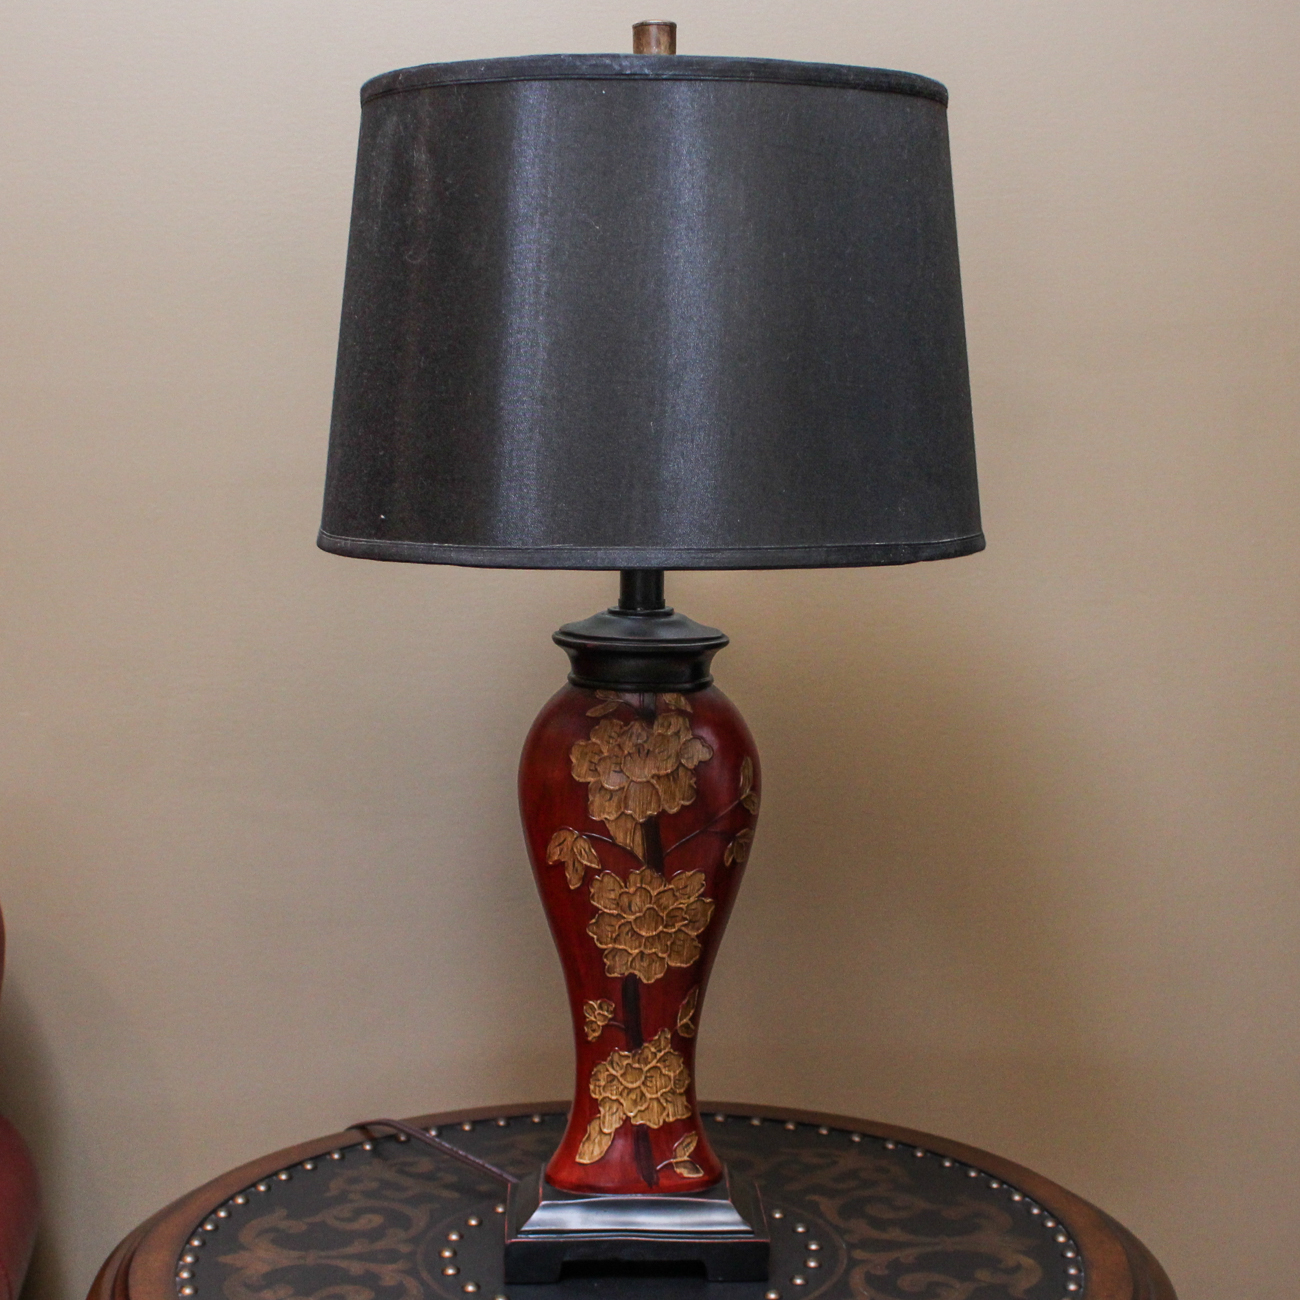 Asian style table lamp with embossed floral motif